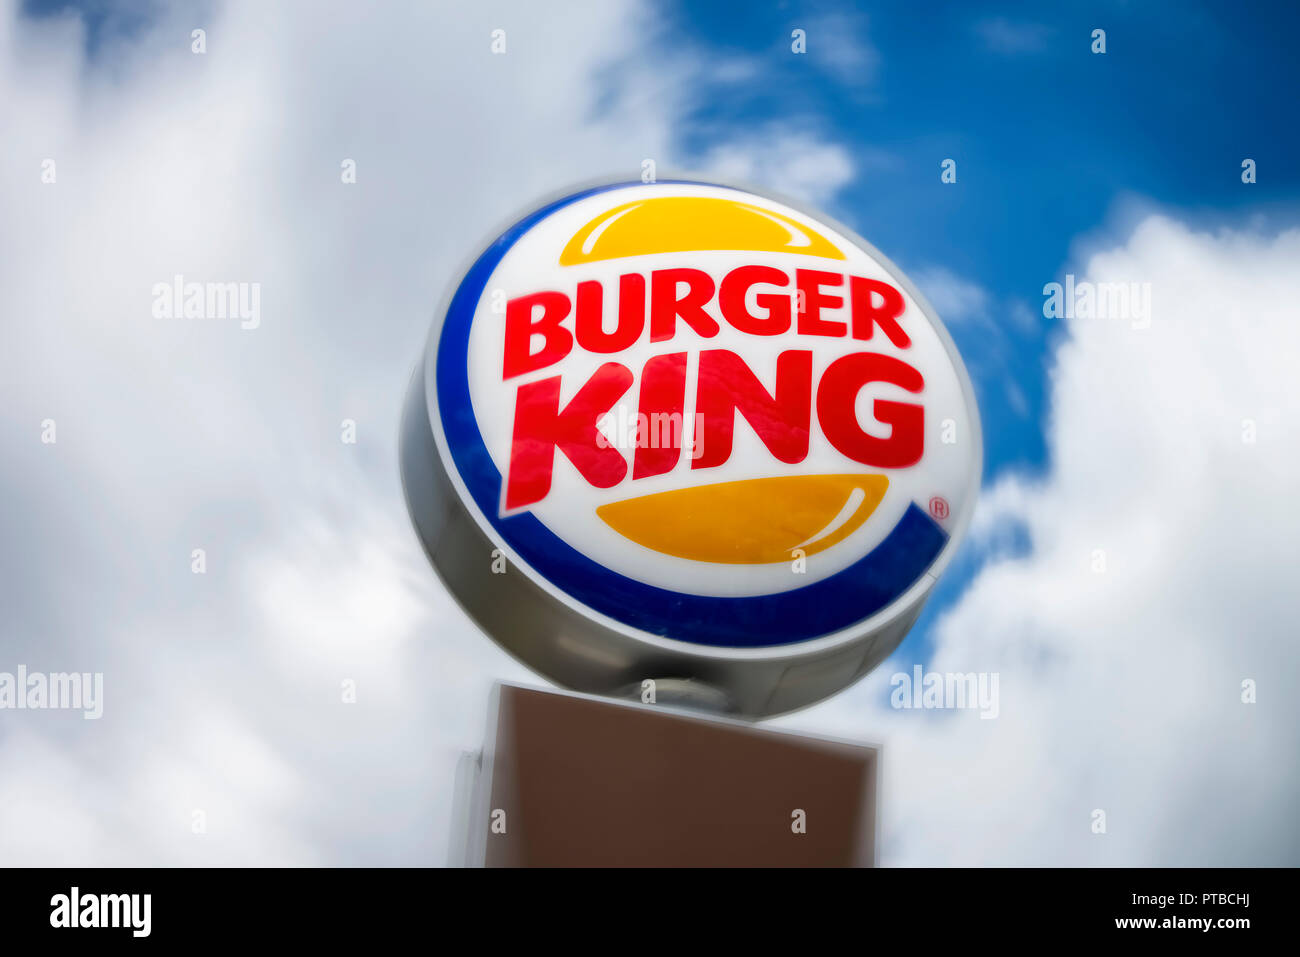 Advertising sign a Burger King branch in front of cloudy skies - Stock Image